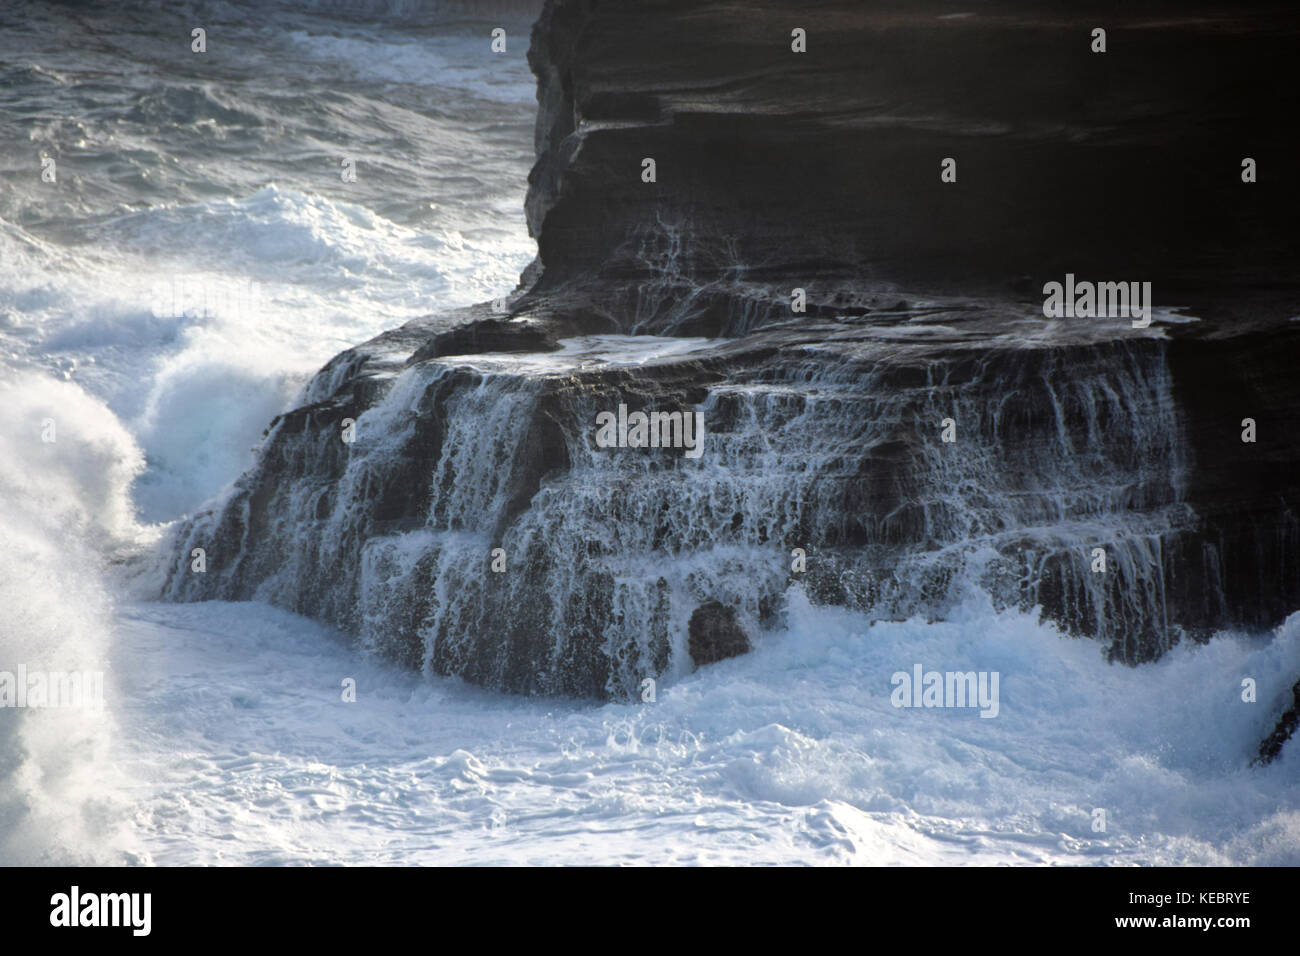 High surf crashes into rocks near the Halona Blowhole in the Southeast corner of Oahu, Hawaii - Stock Image